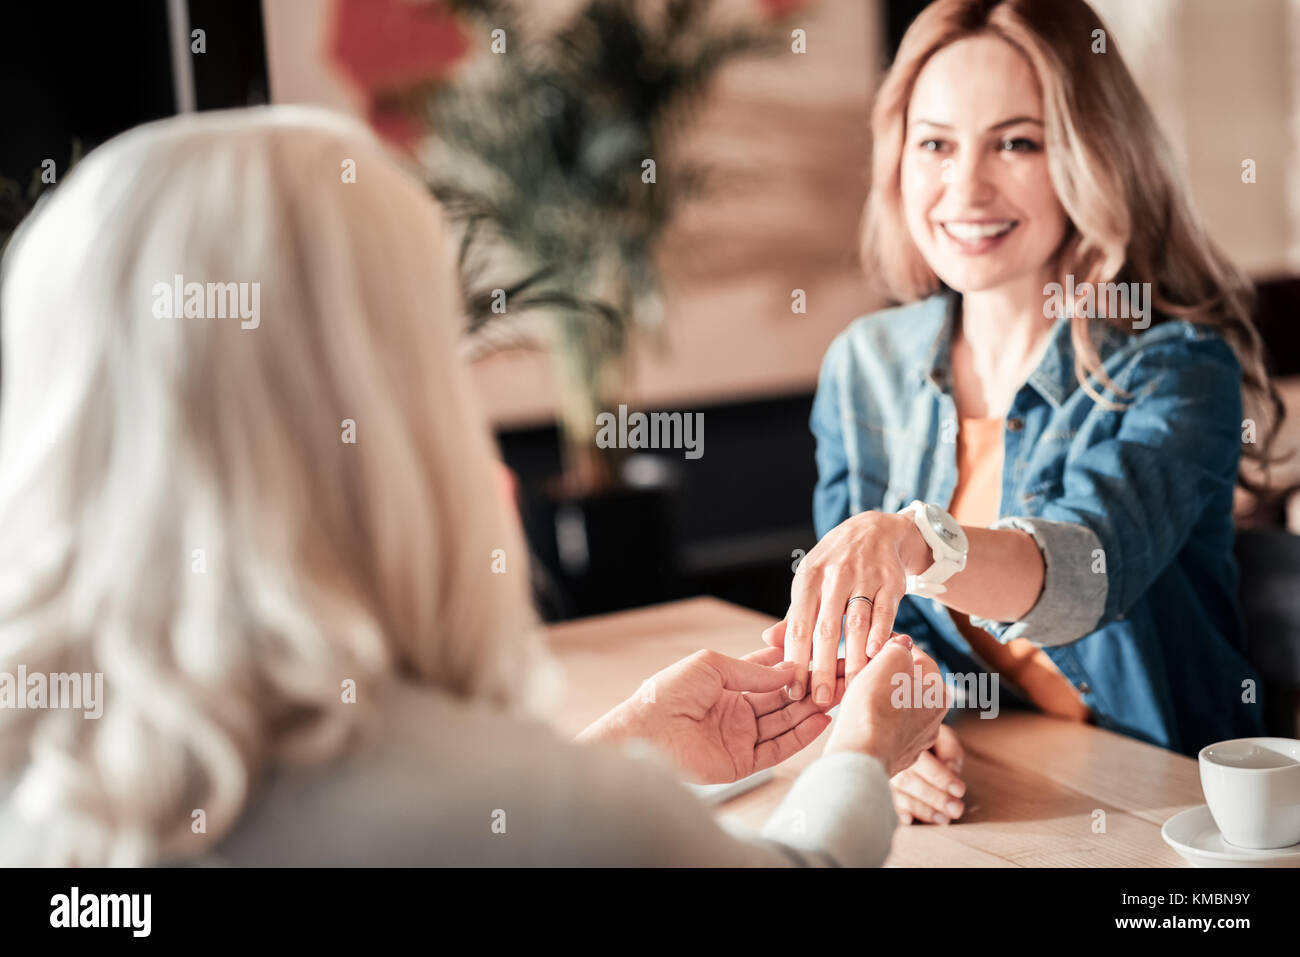 Emotional young woman showing an engagement ring to her relative - Stock Image